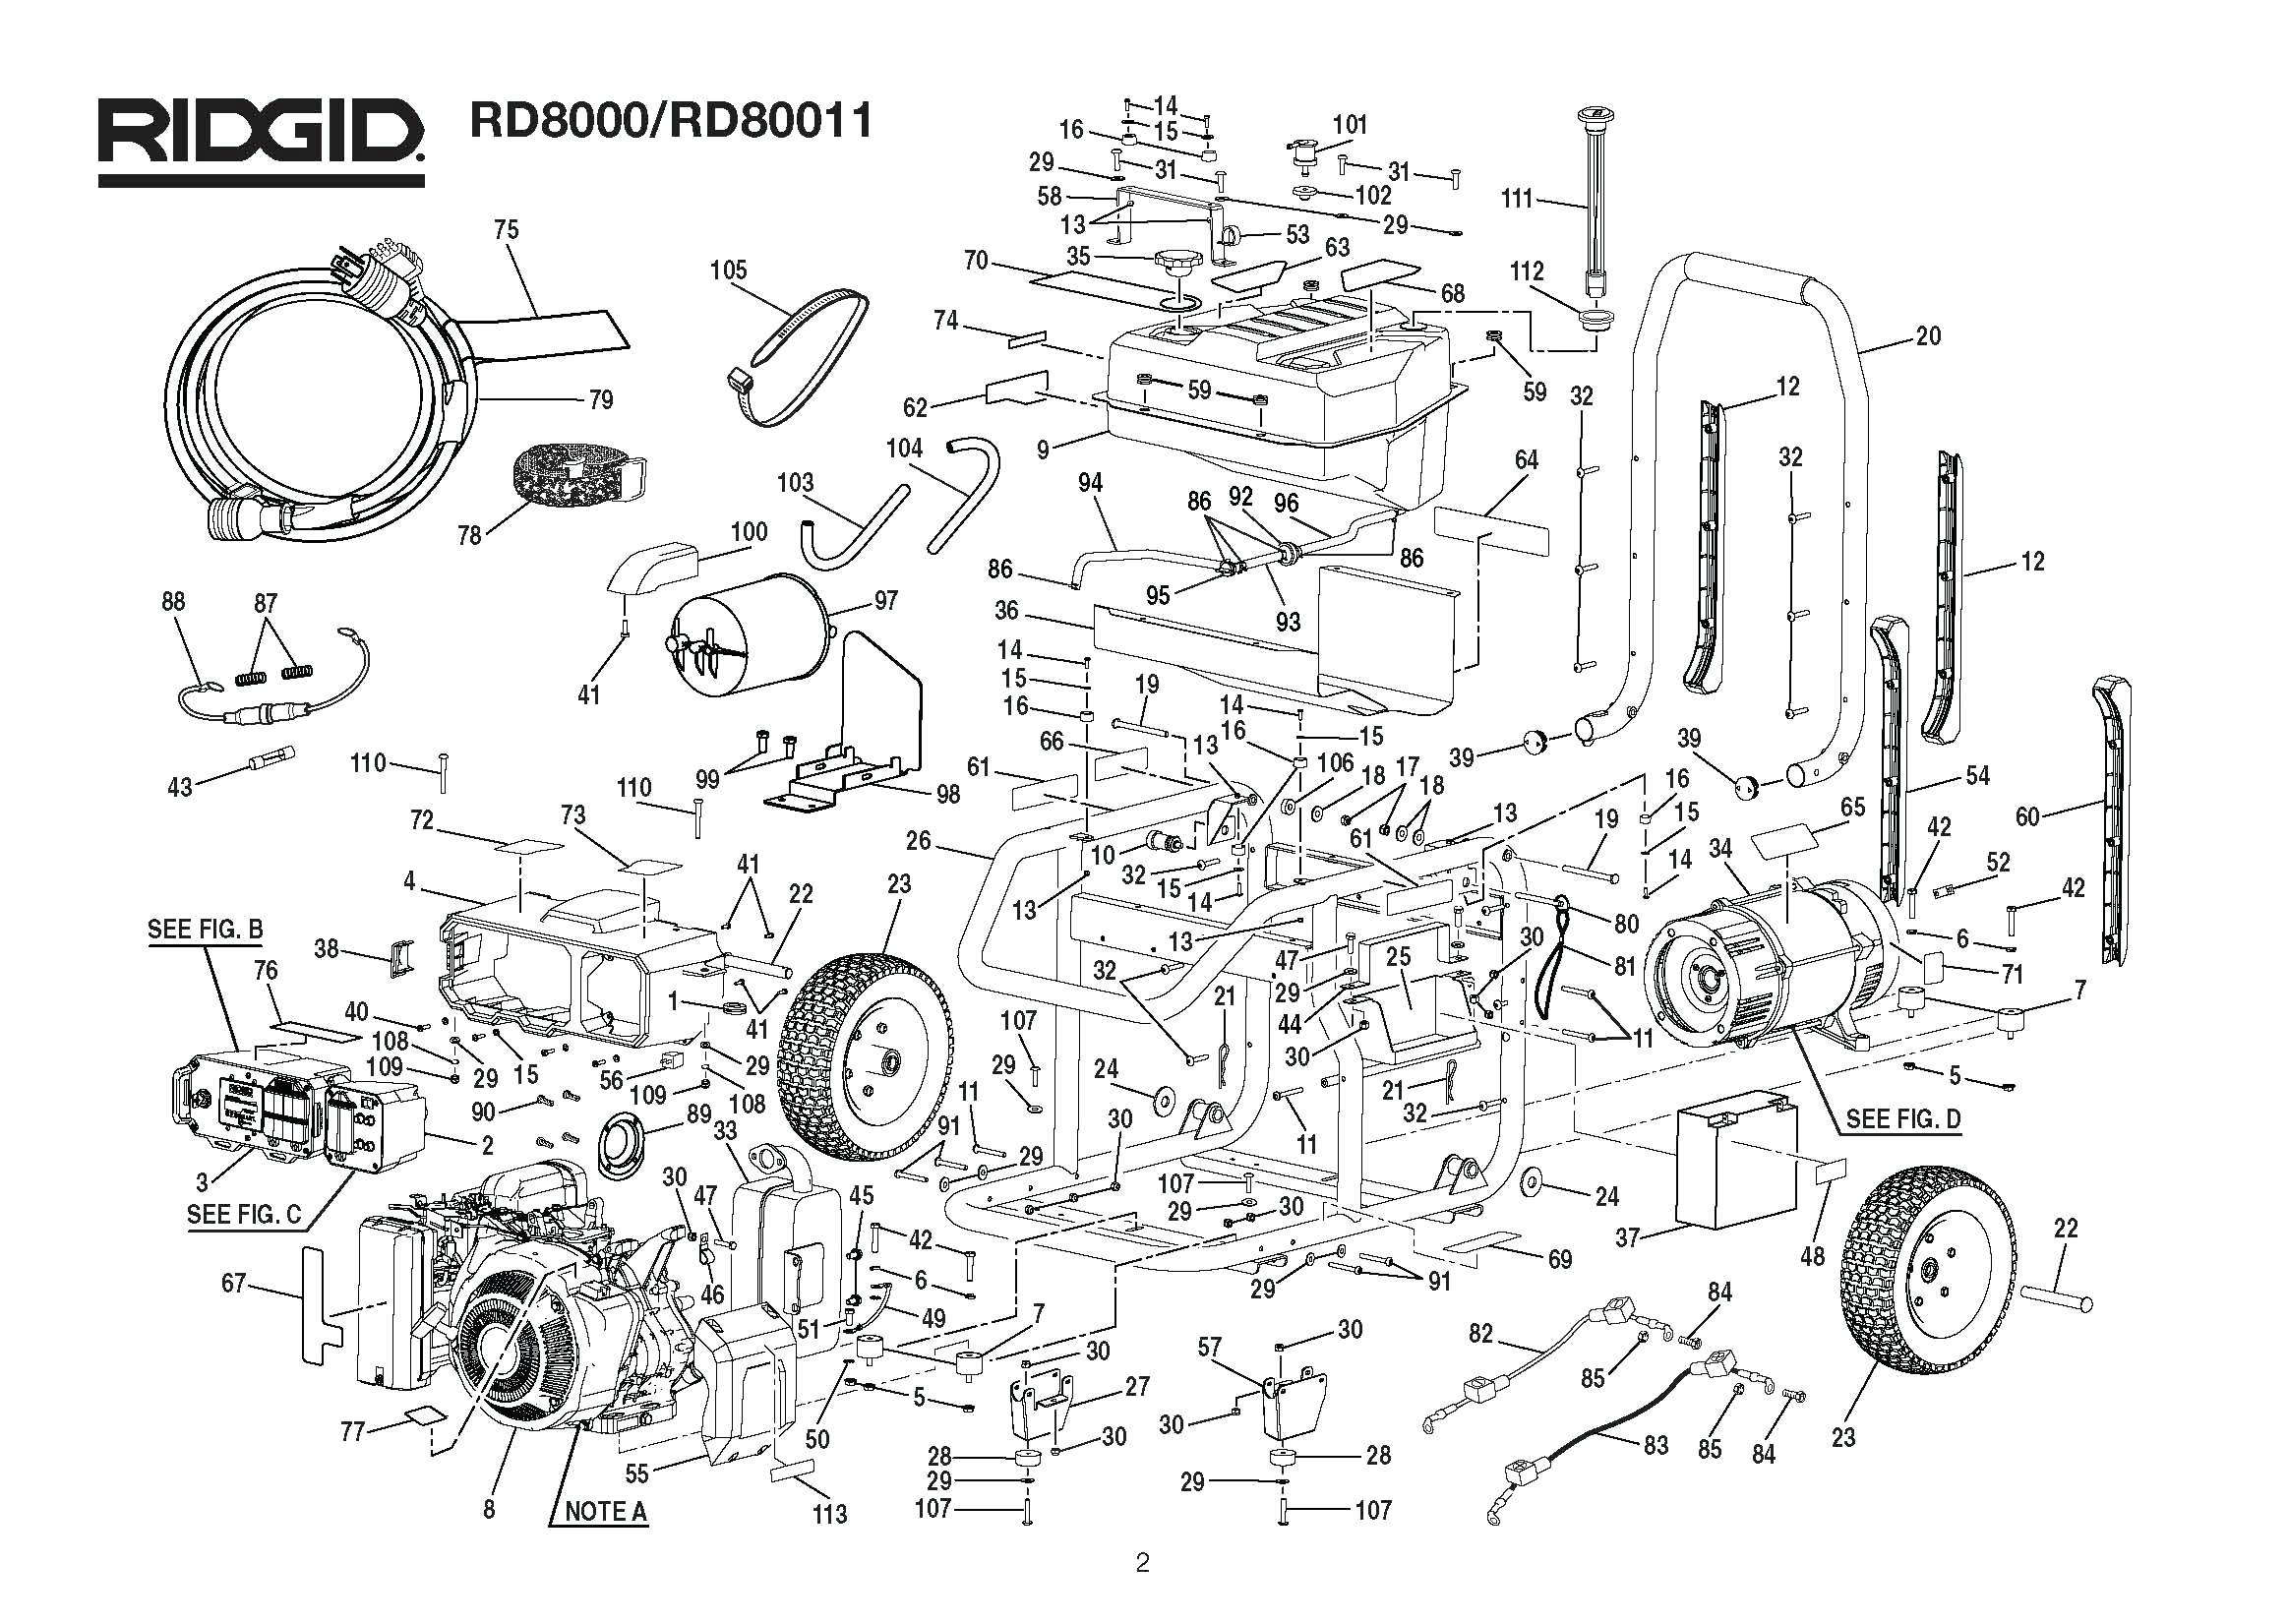 [DIAGRAM] 2012 Subaru Wiring Diagrams Free FULL Version HD